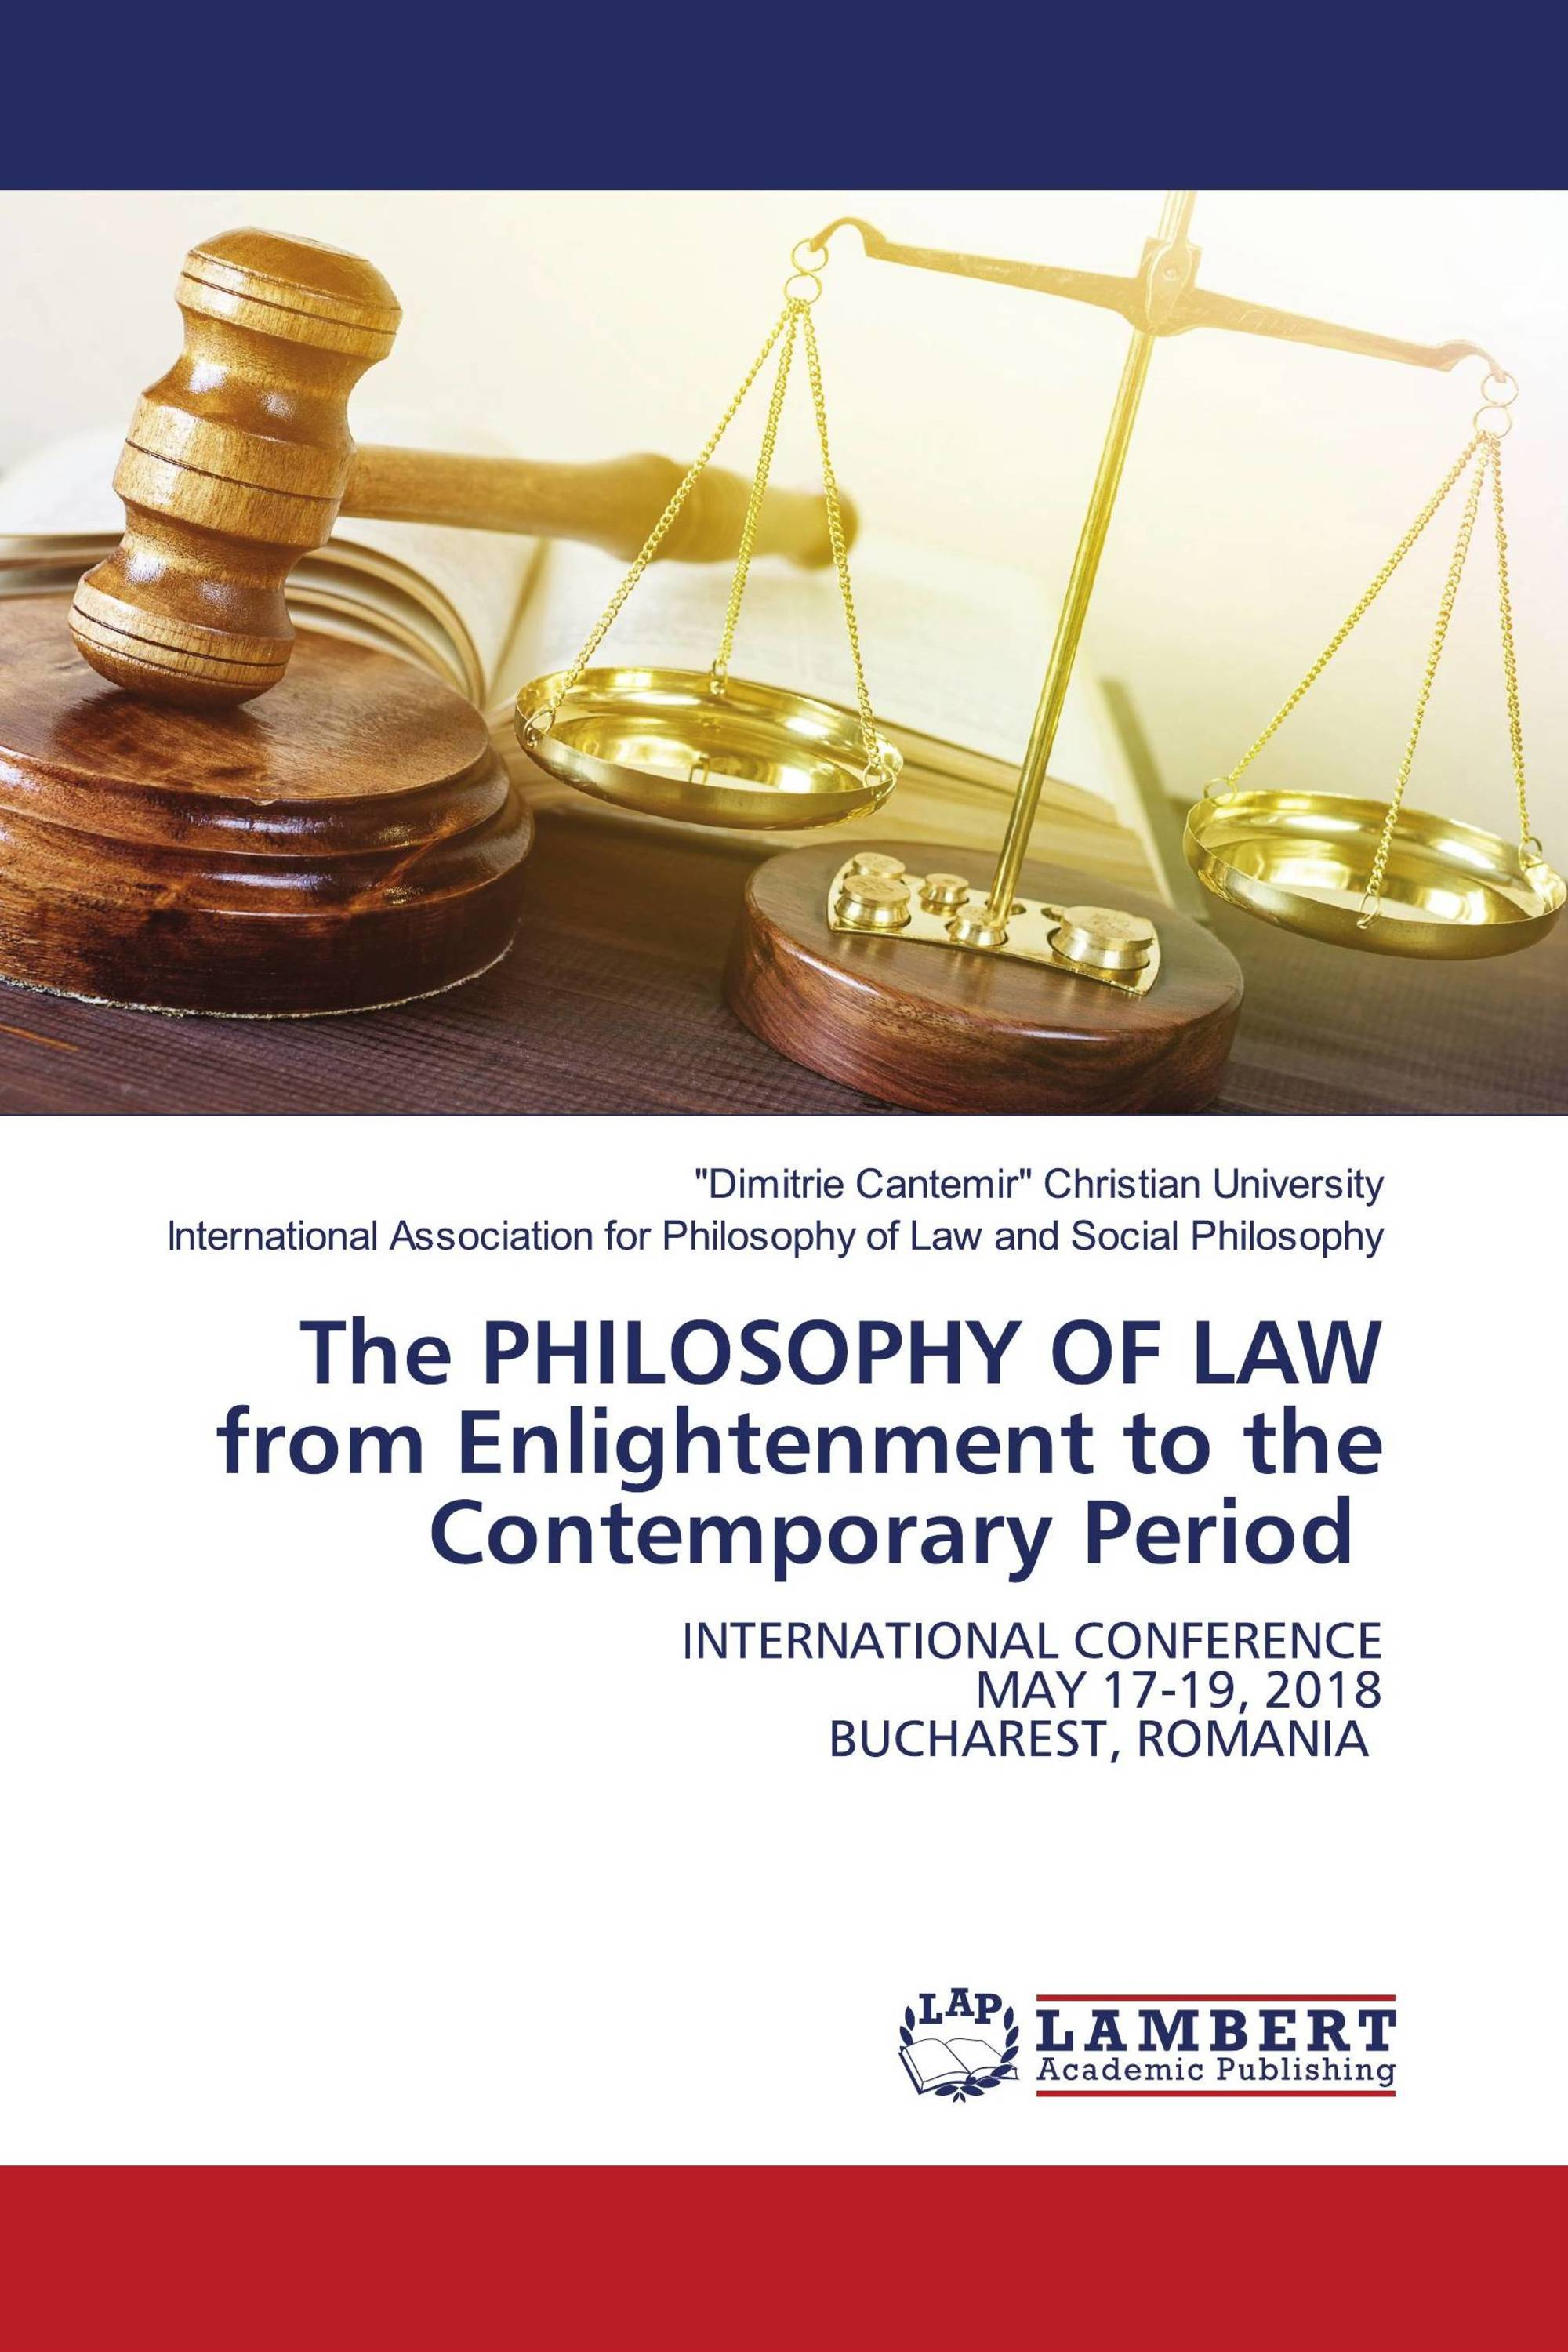 The PHILOSOPHY OF LAW from Enlightenment to the Contemporary Period